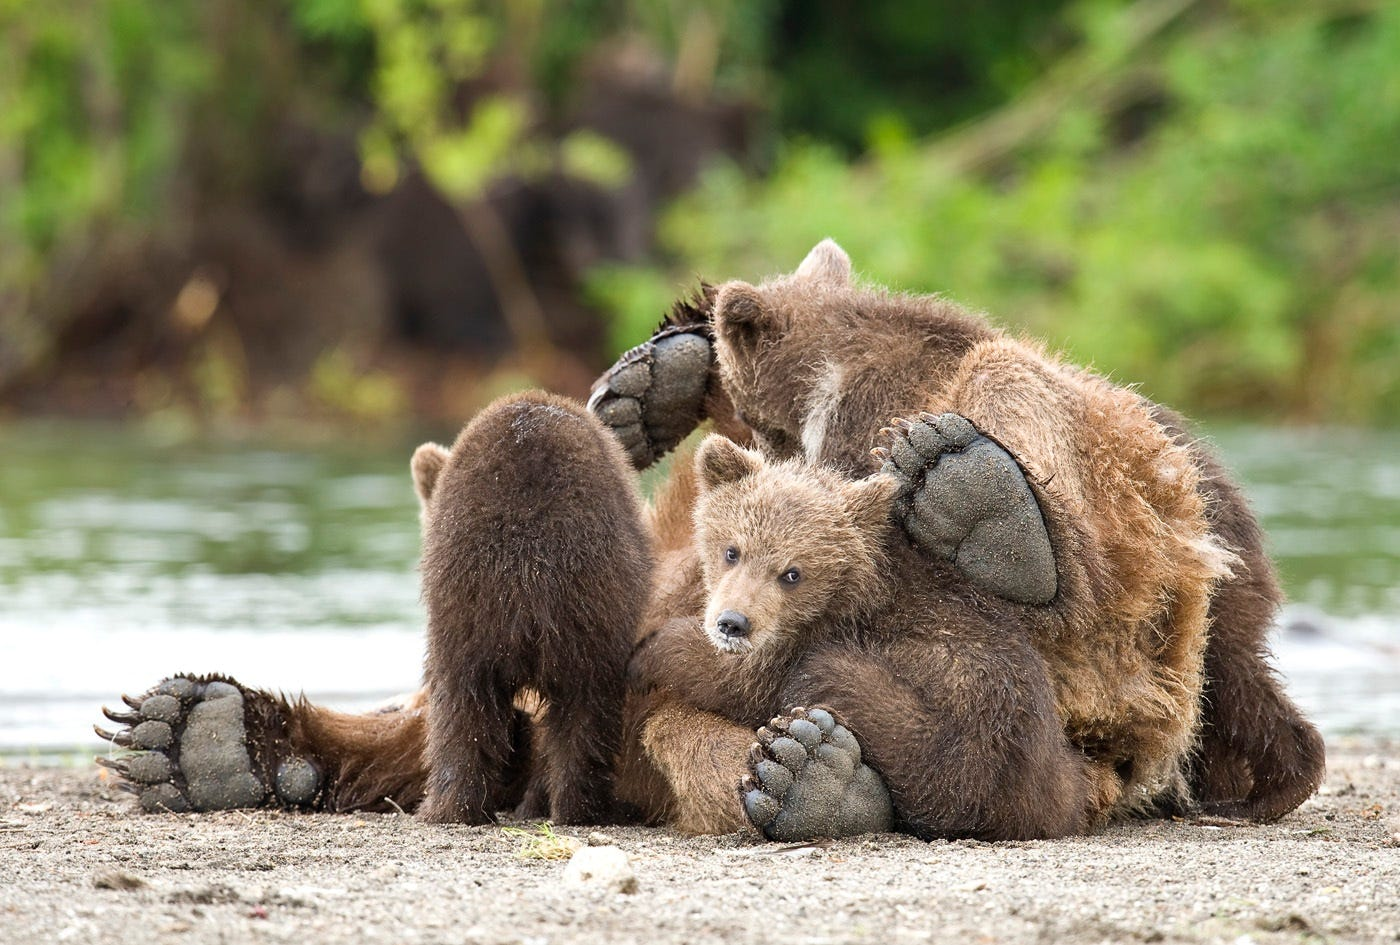 Ungentle charm of Kamchatka bears in photos by Sergey Ivanov - 12